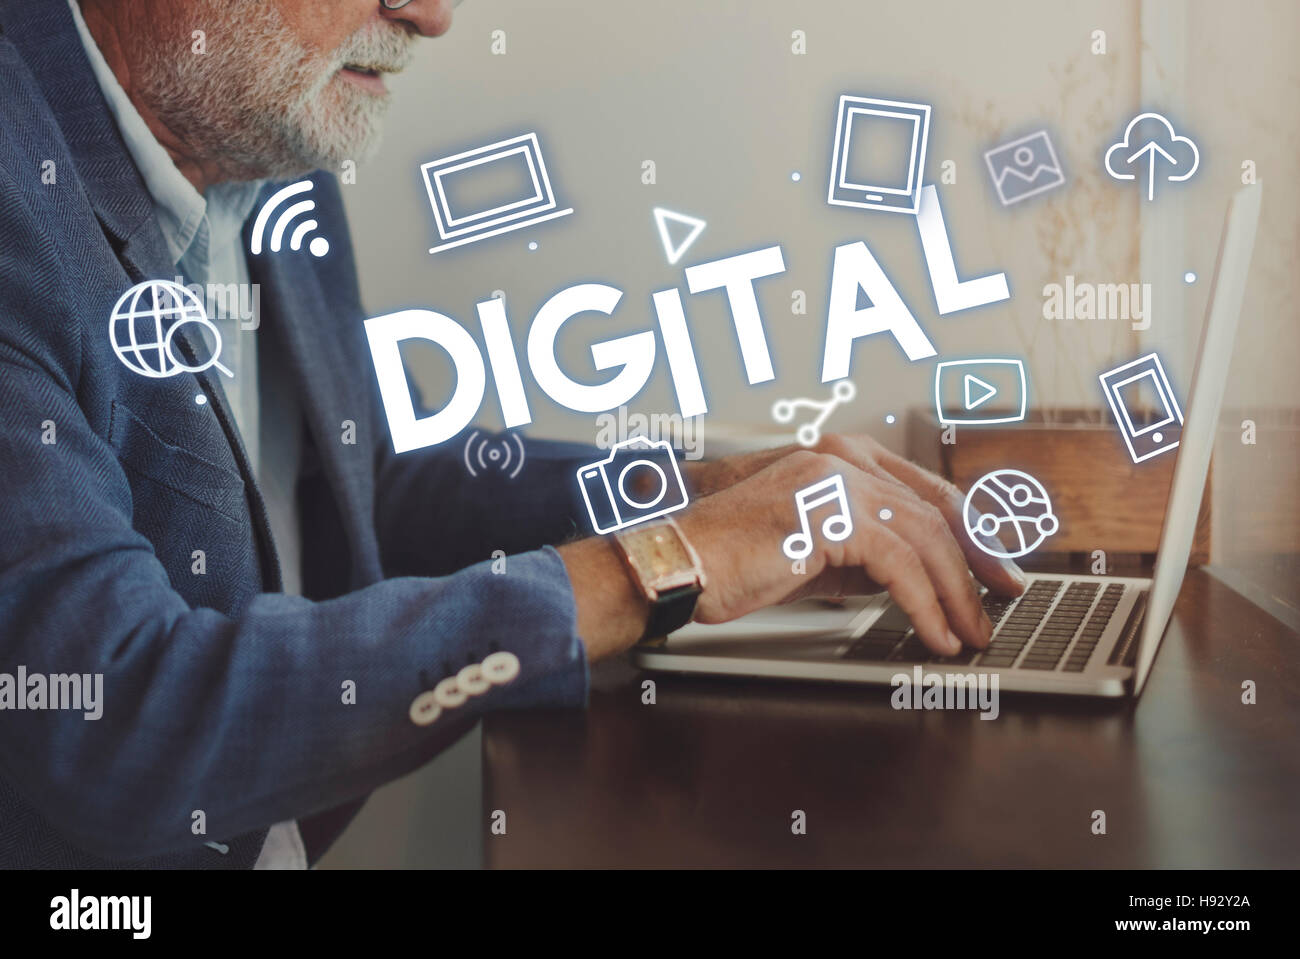 Digital Technology Icons Graphic Concept - Stock Image